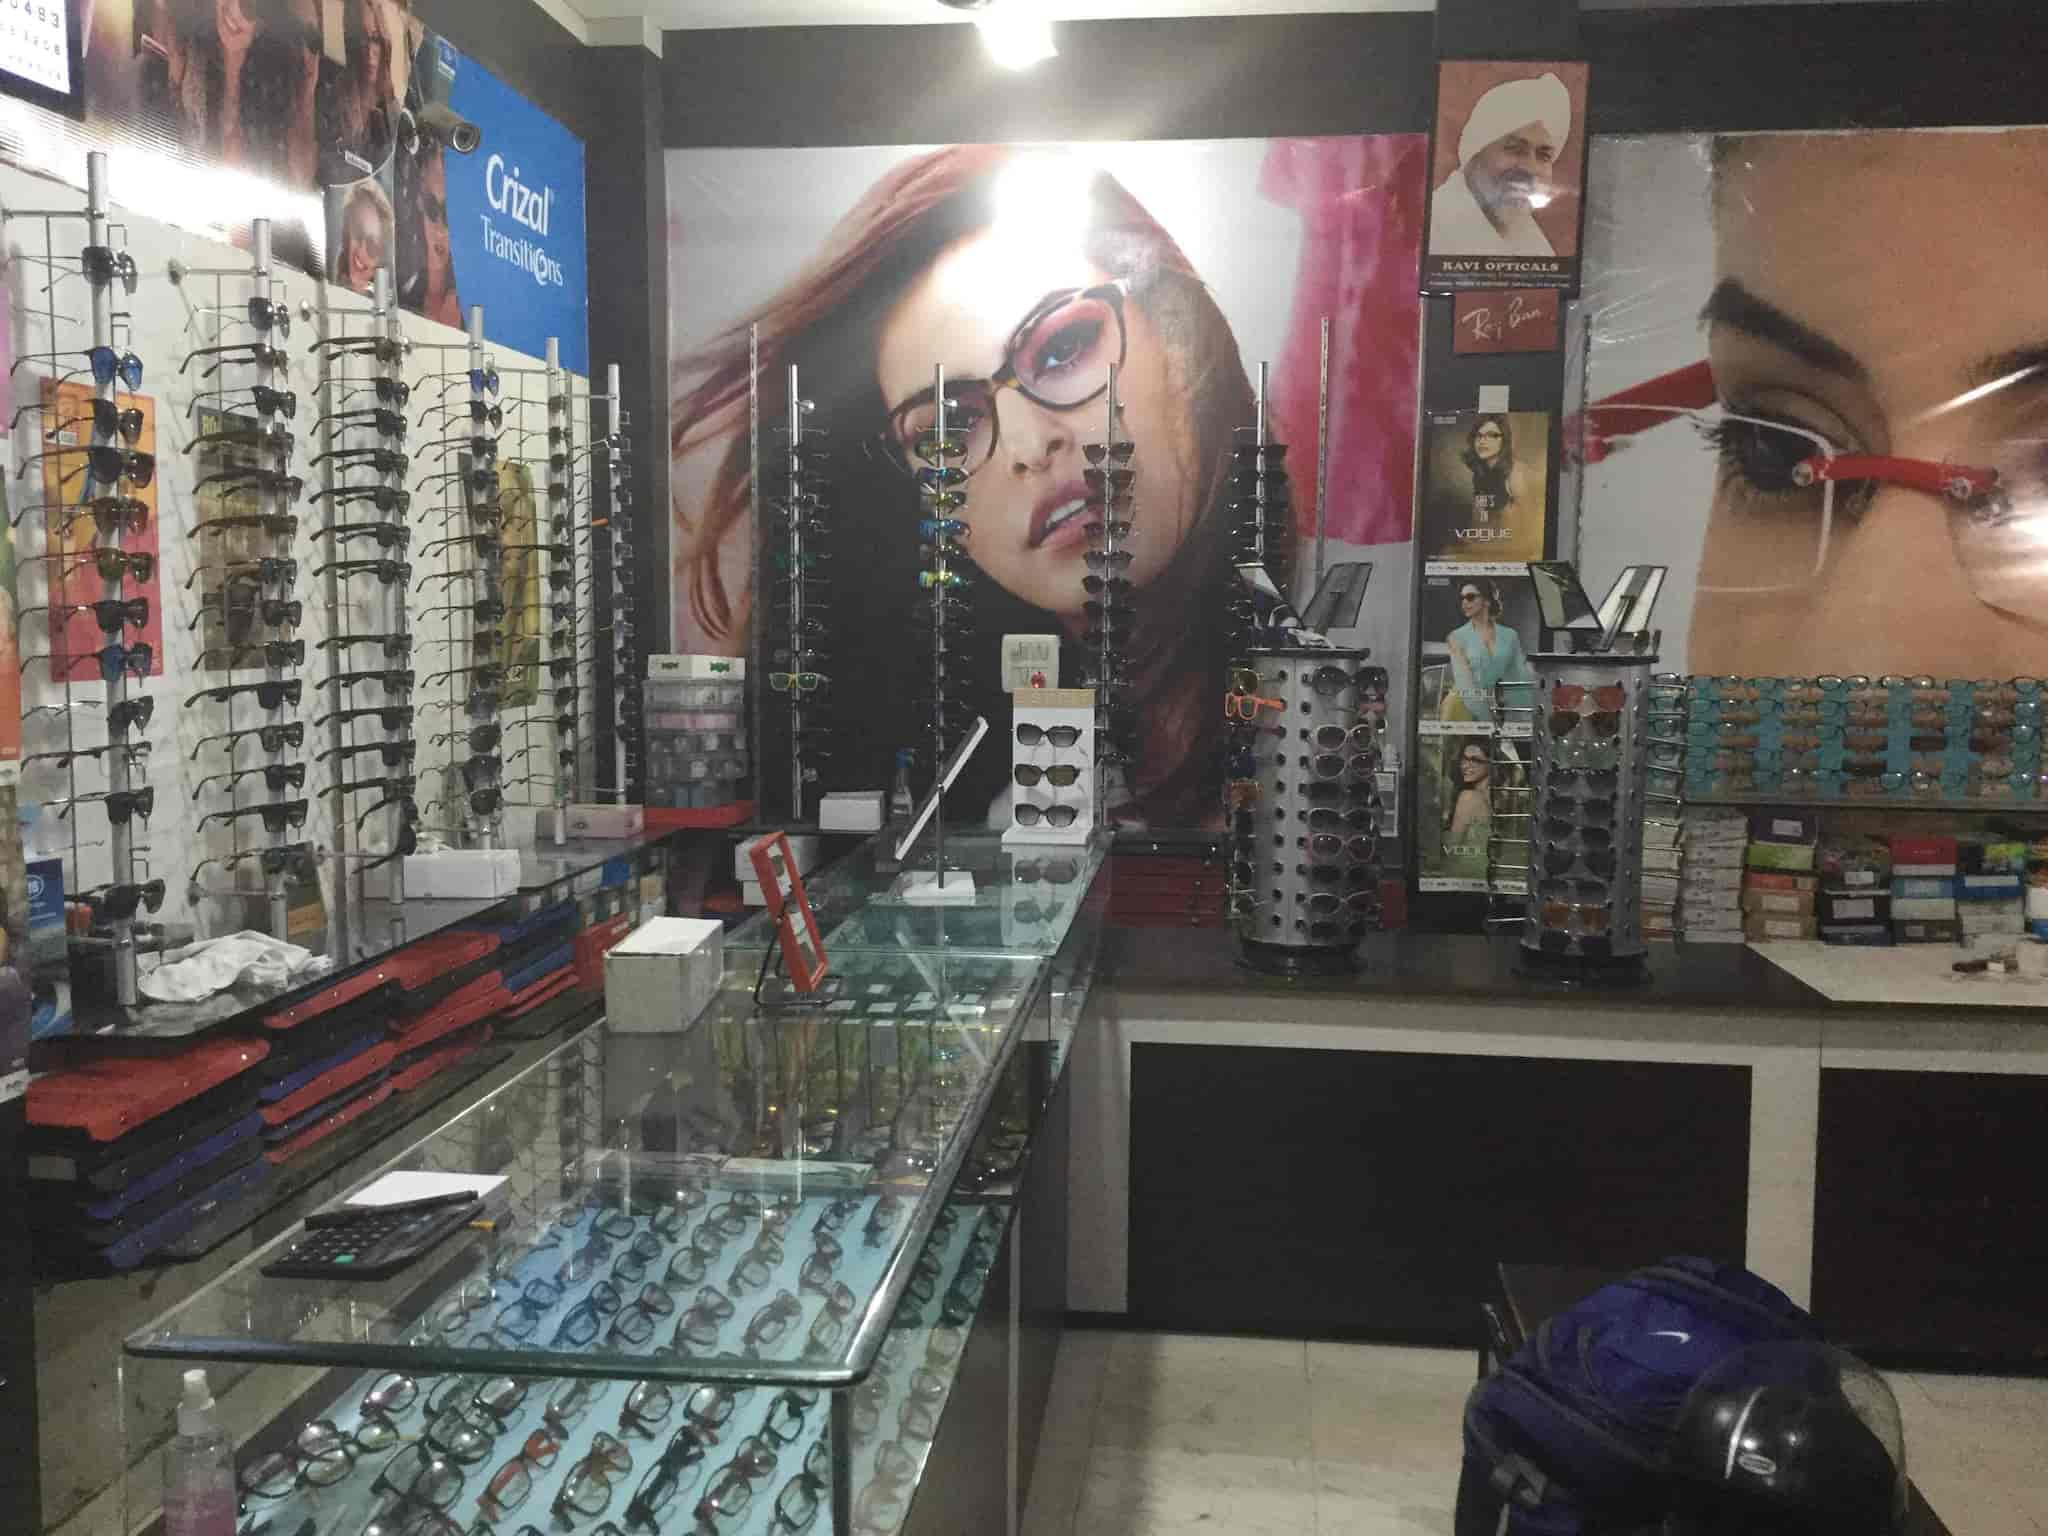 Ravi Optical New Janta Nagar Ophthalmologists In Ludhiana Justdial Minimal Enigma Floral Blouse Fs